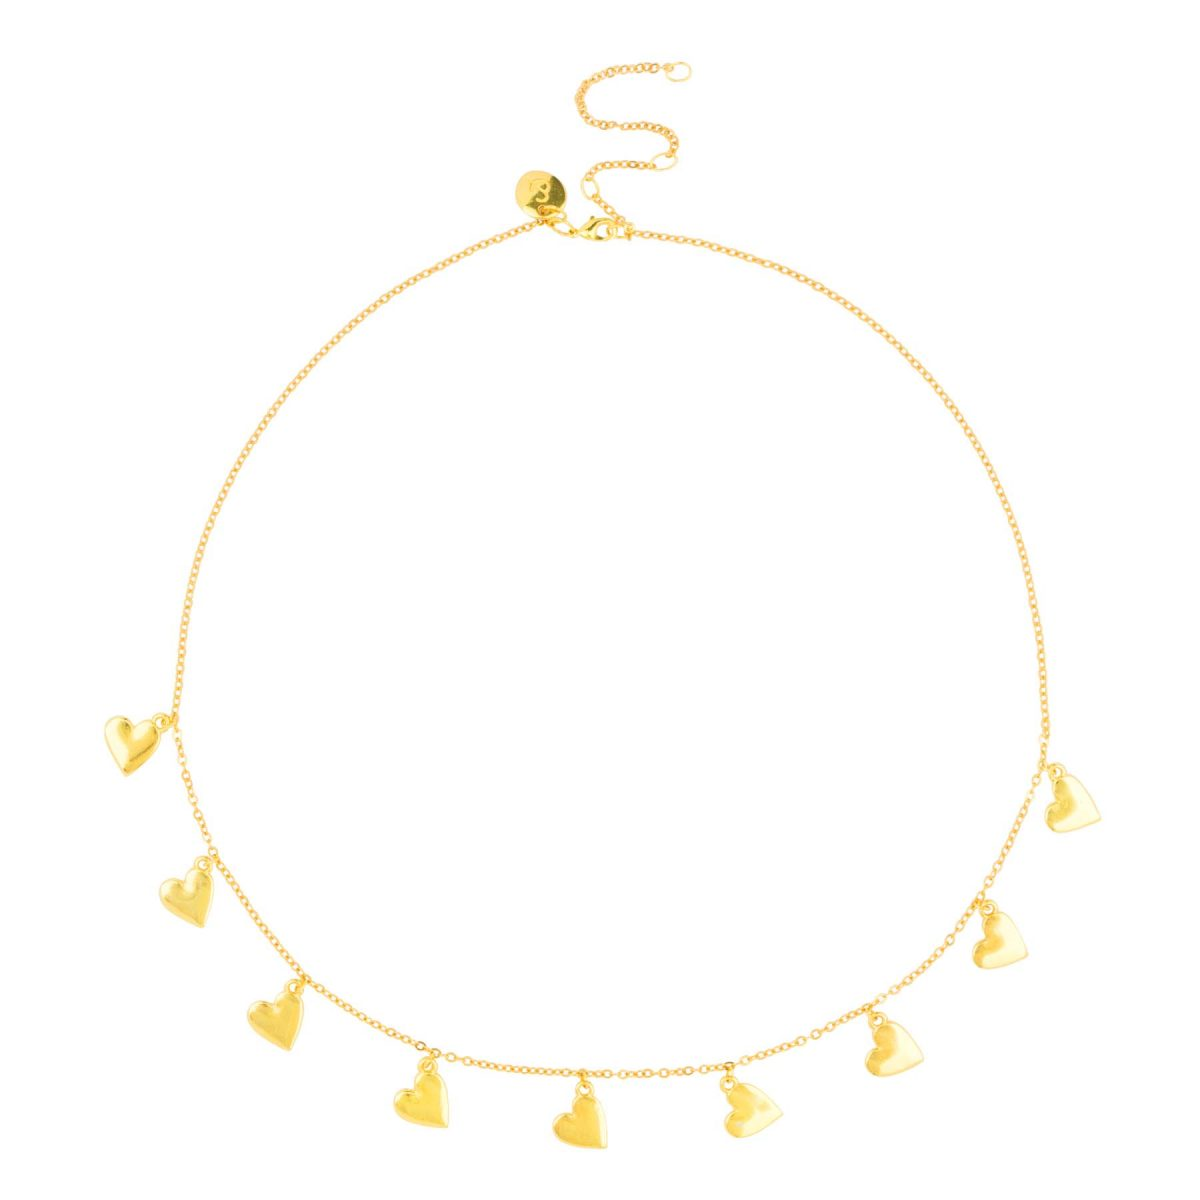 Beautiful 24k gold plated necklace with little heart charms and gift box from the &anne jewelry collection